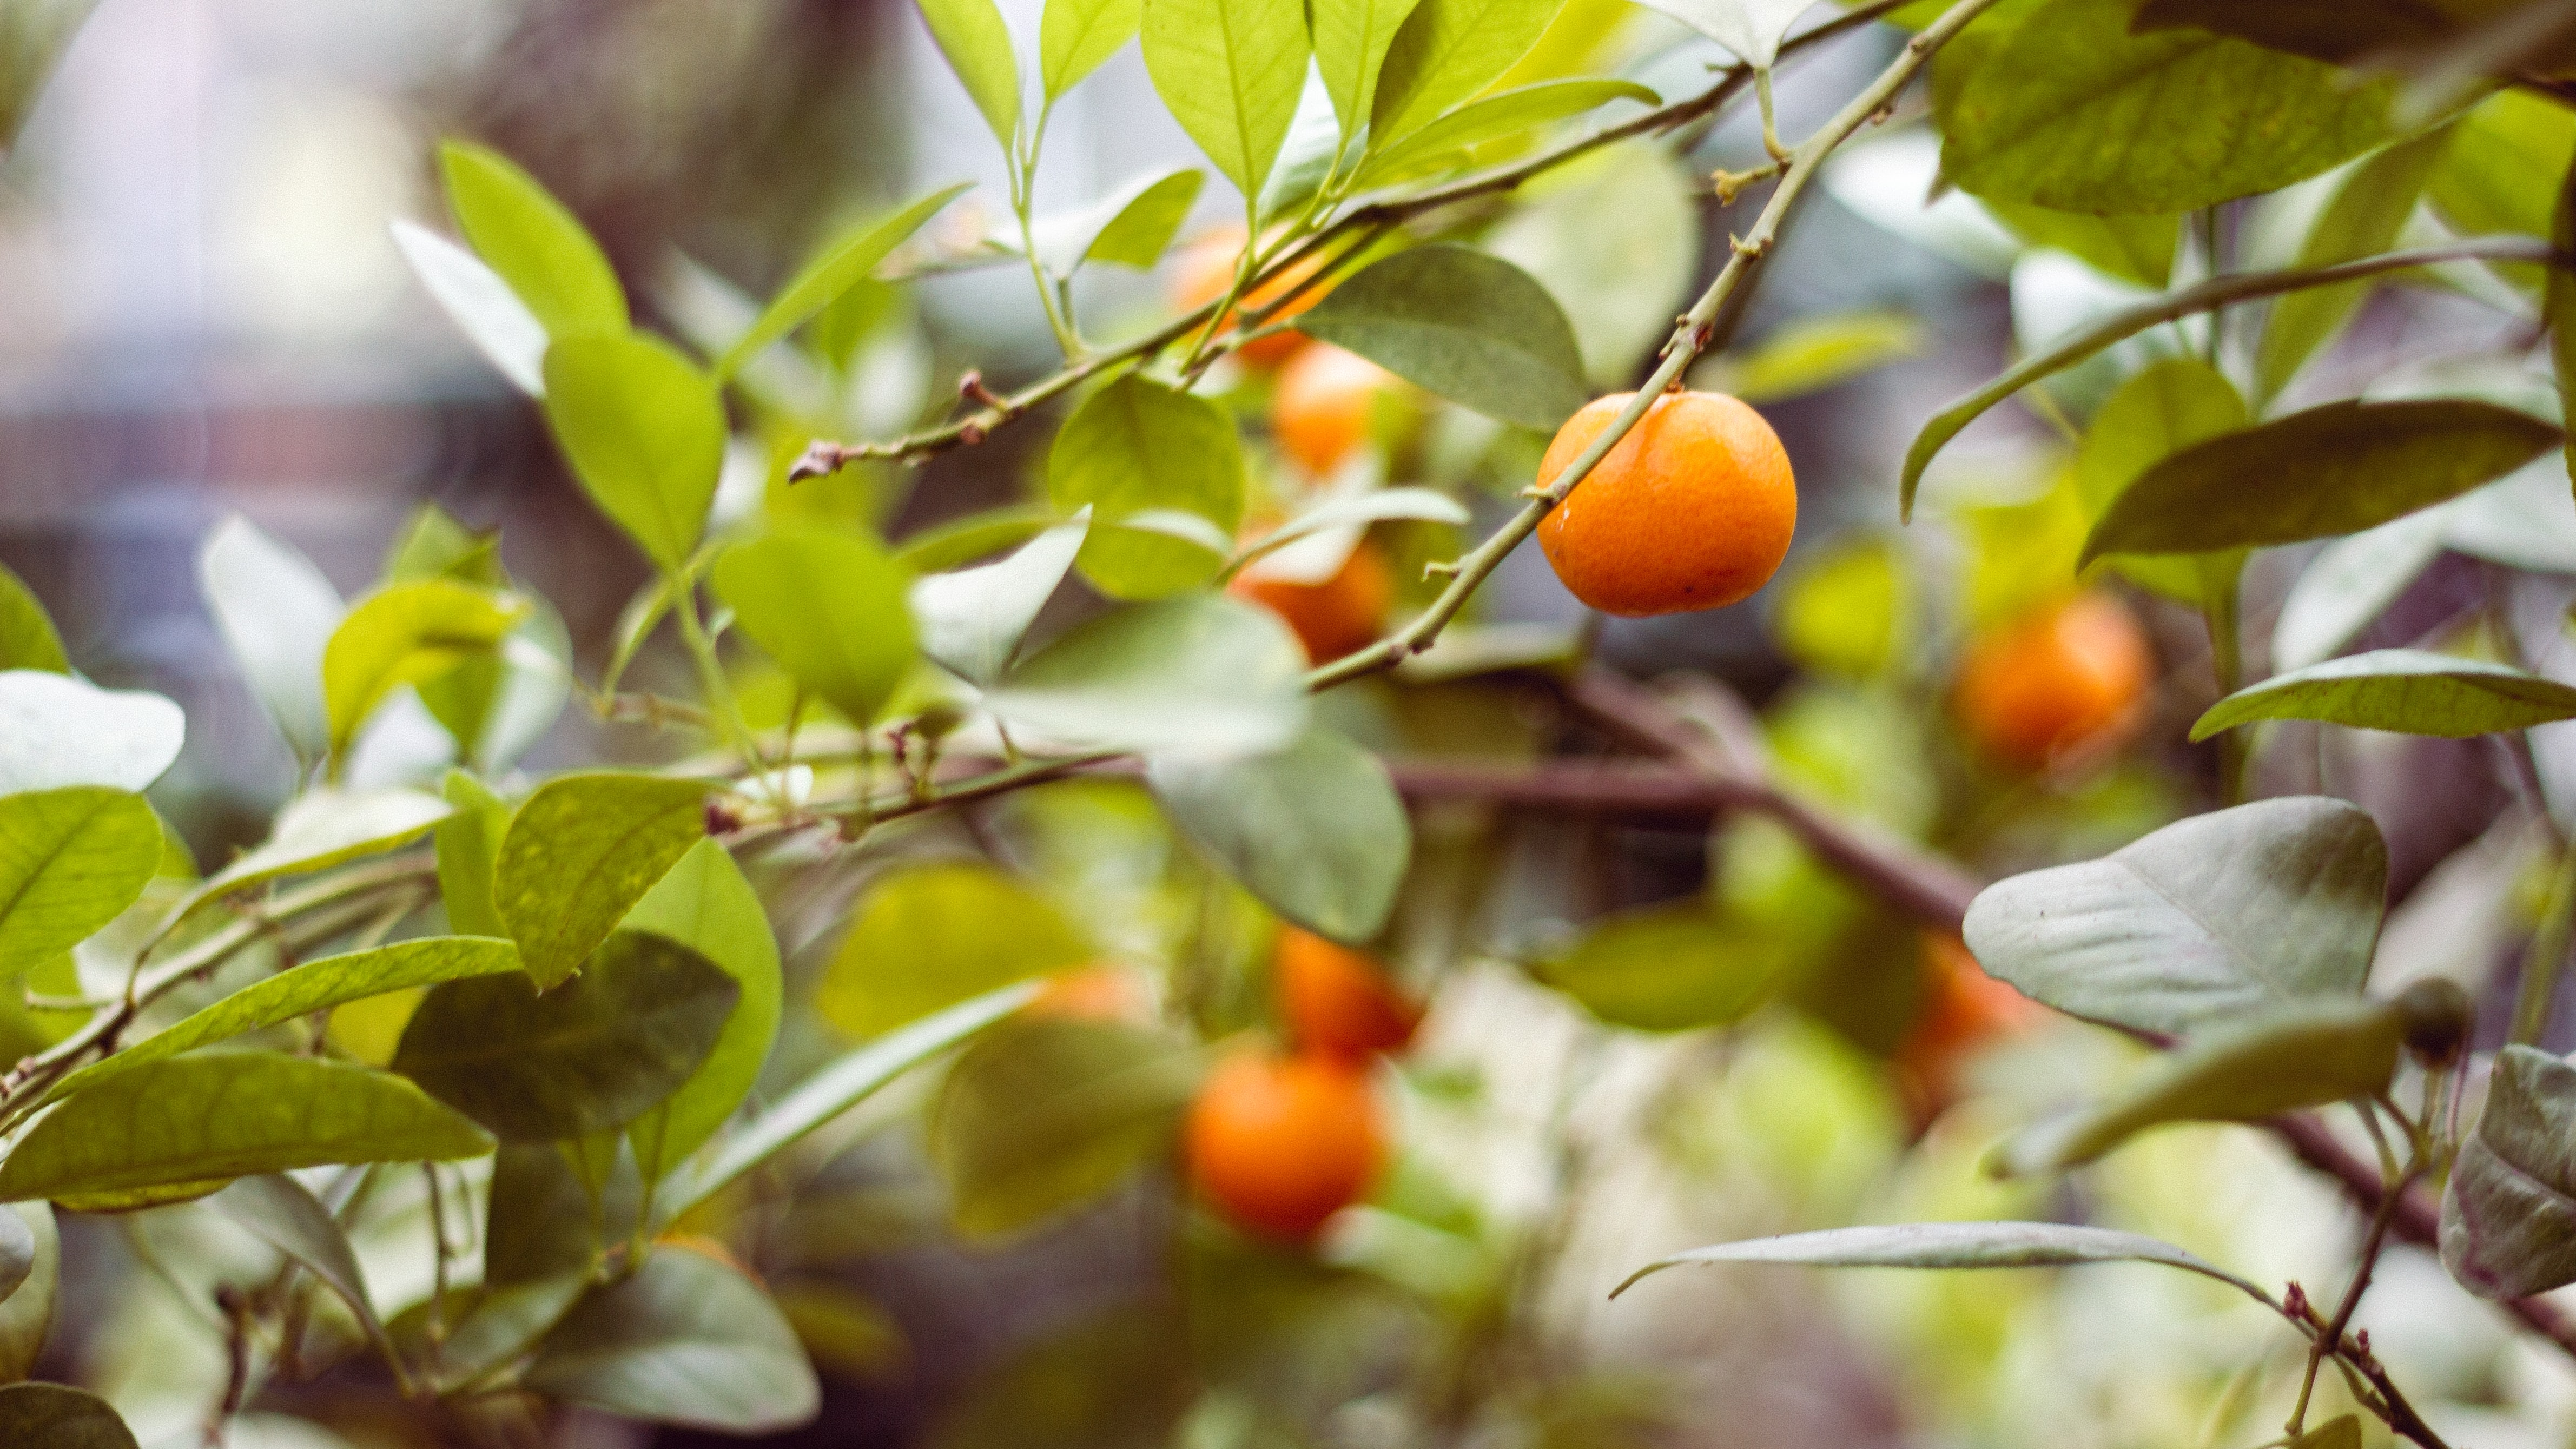 round orange fruit in selective focus photography